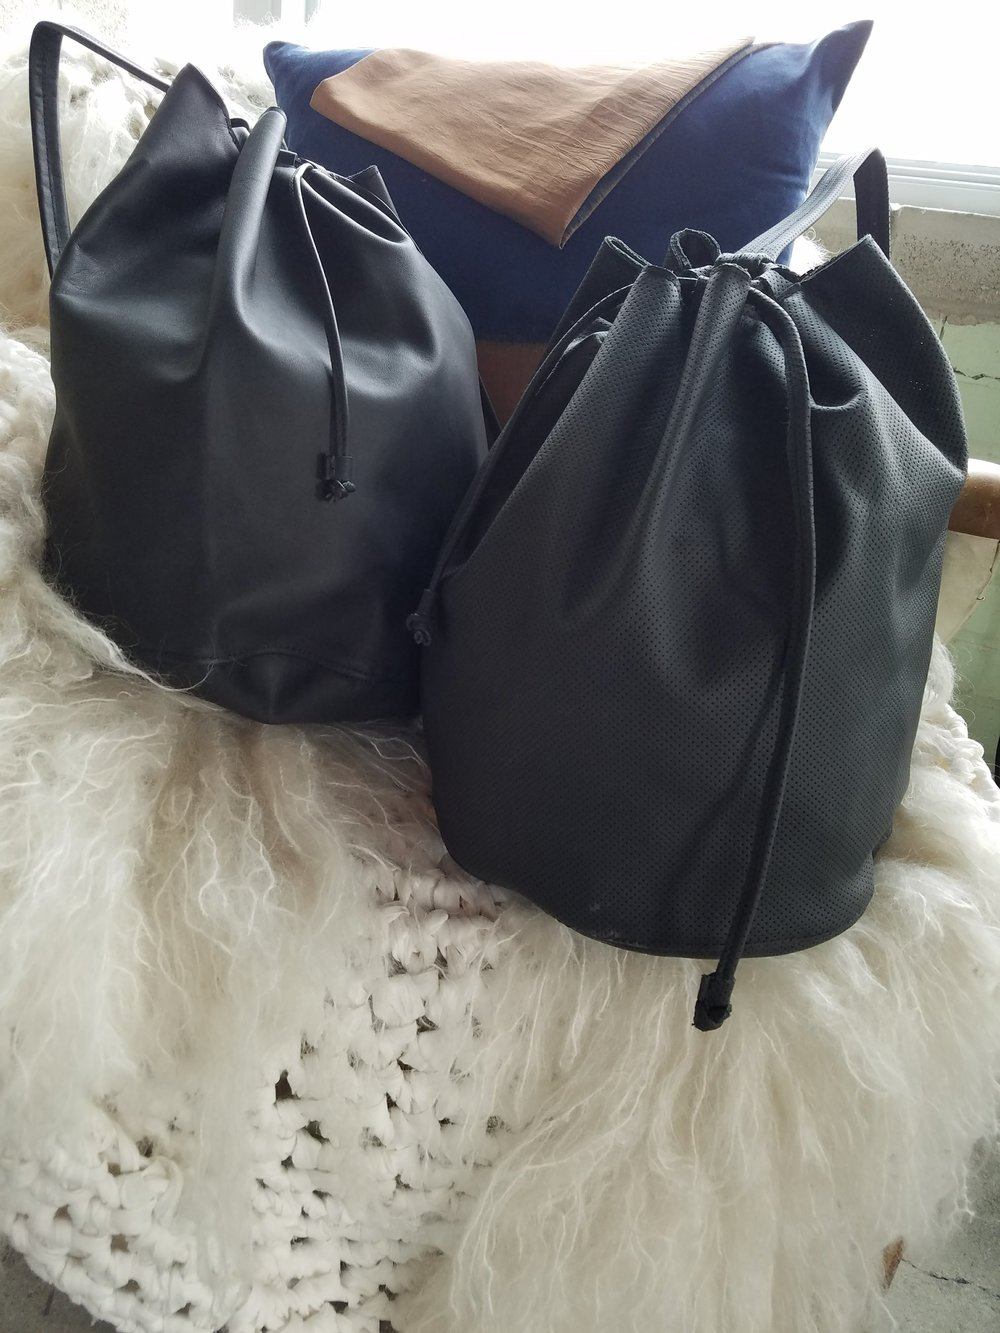 Leather bags and bag packs made by Leslie for the BLANK ITTI BLANK collection,